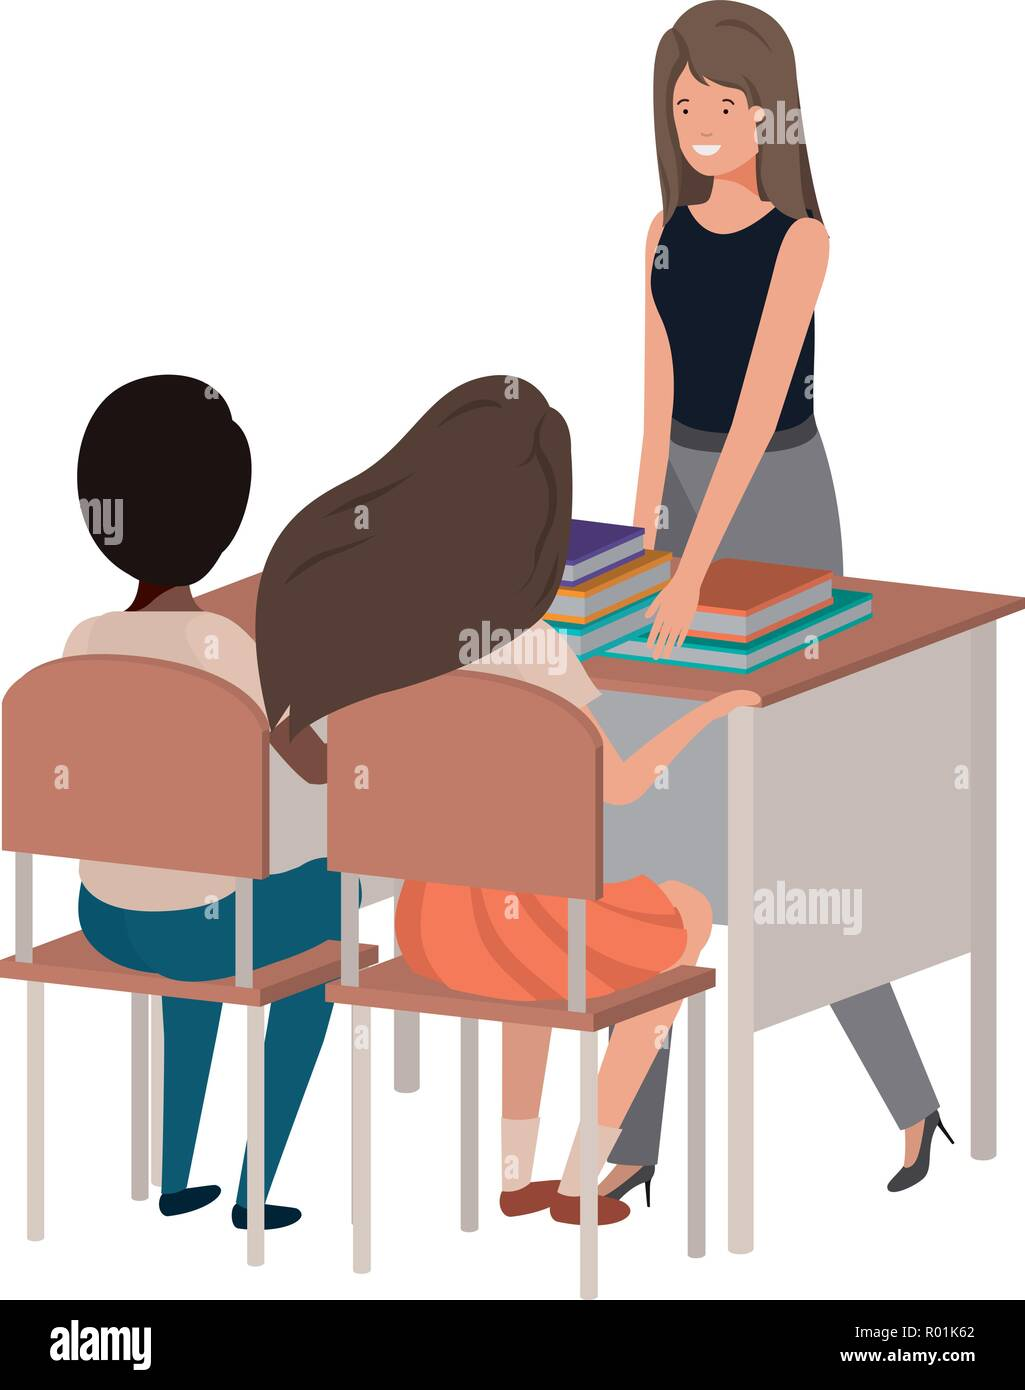 female teacher in the classroom with students - Stock Image